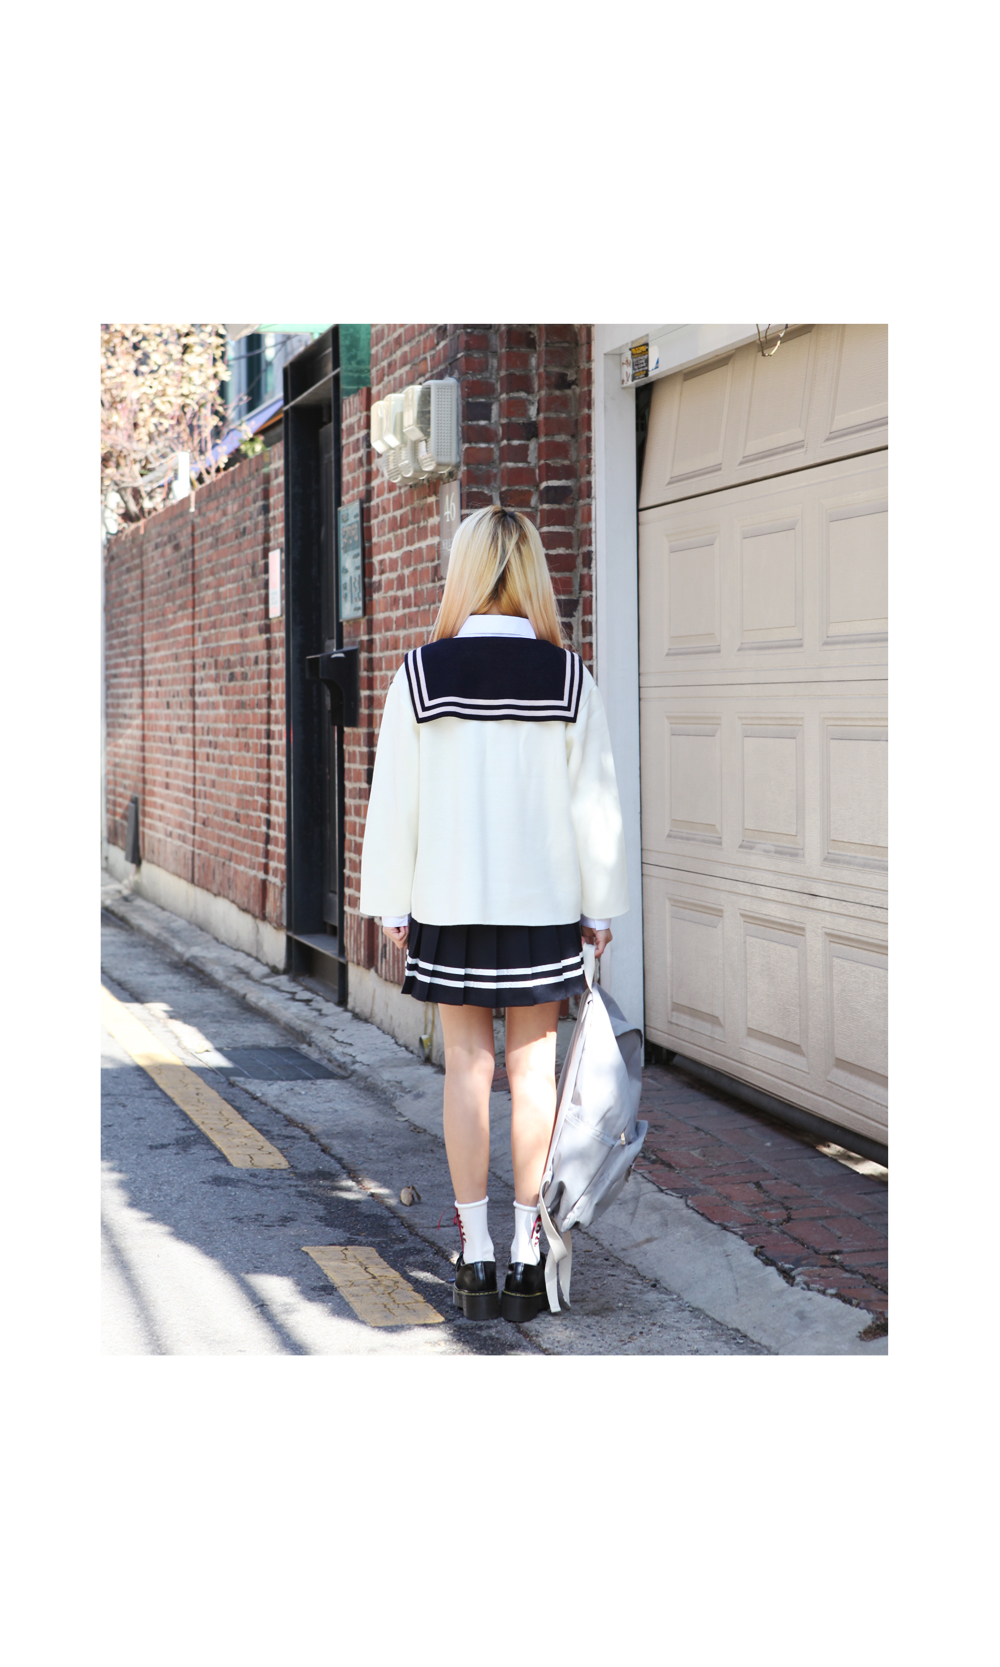 Ashley two lines tennis skirt # skirt pants